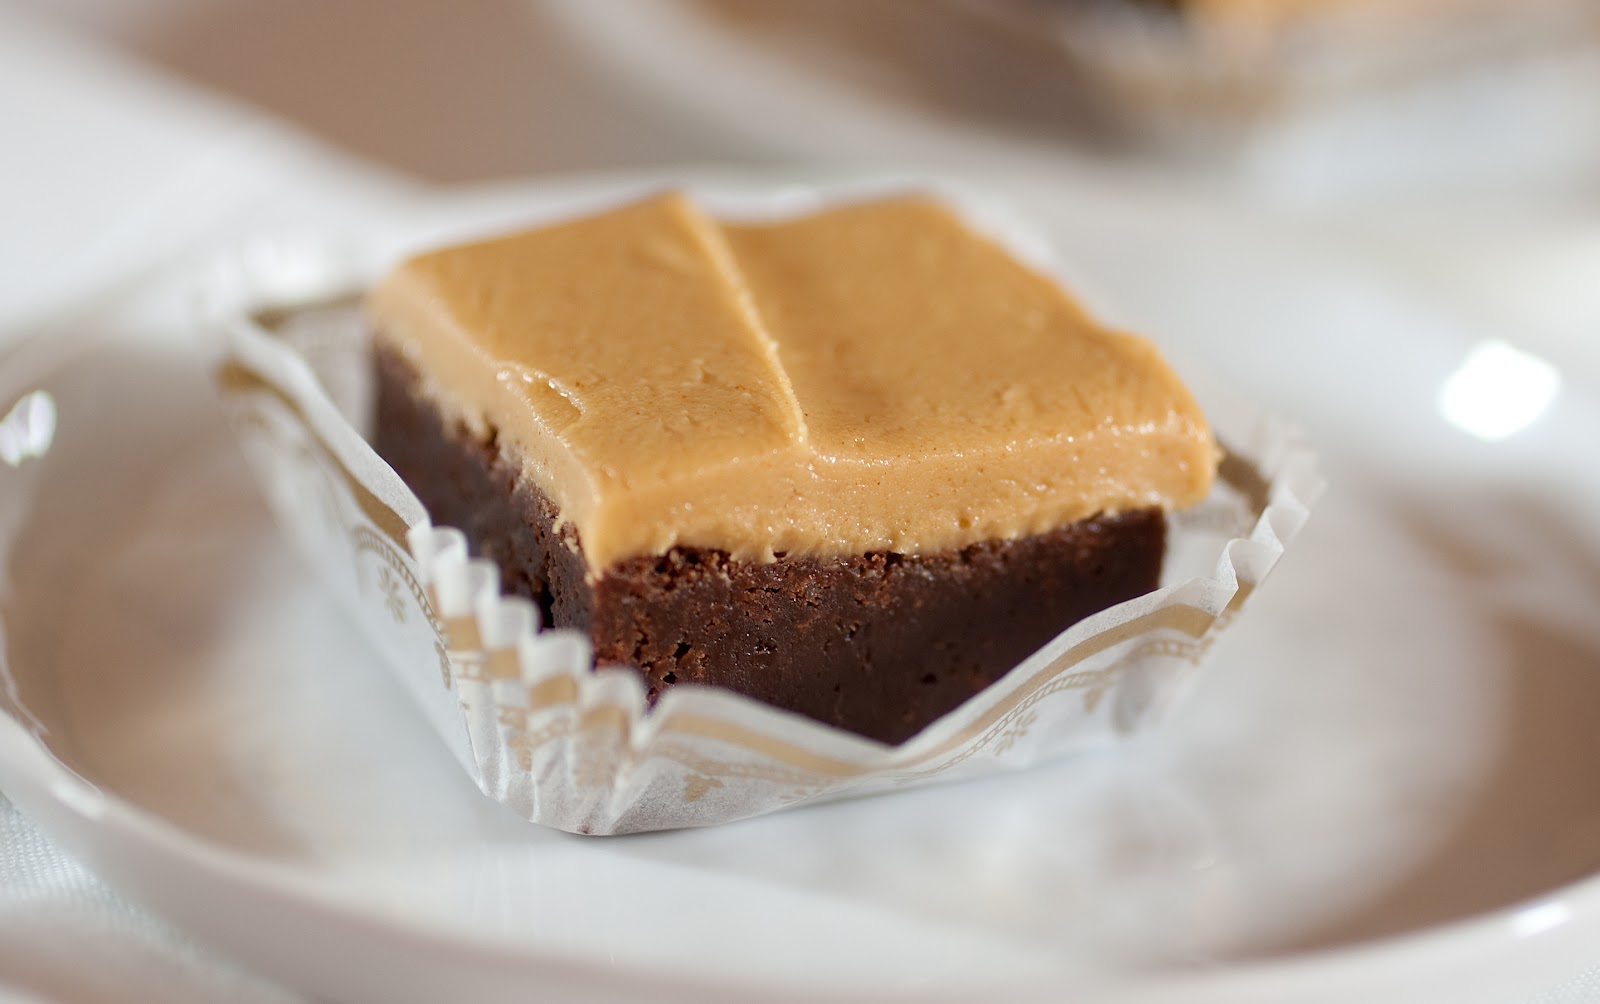 Tish Boyle Sweet Dreams: Fudgy Brownies with Peanut Butter Frosting